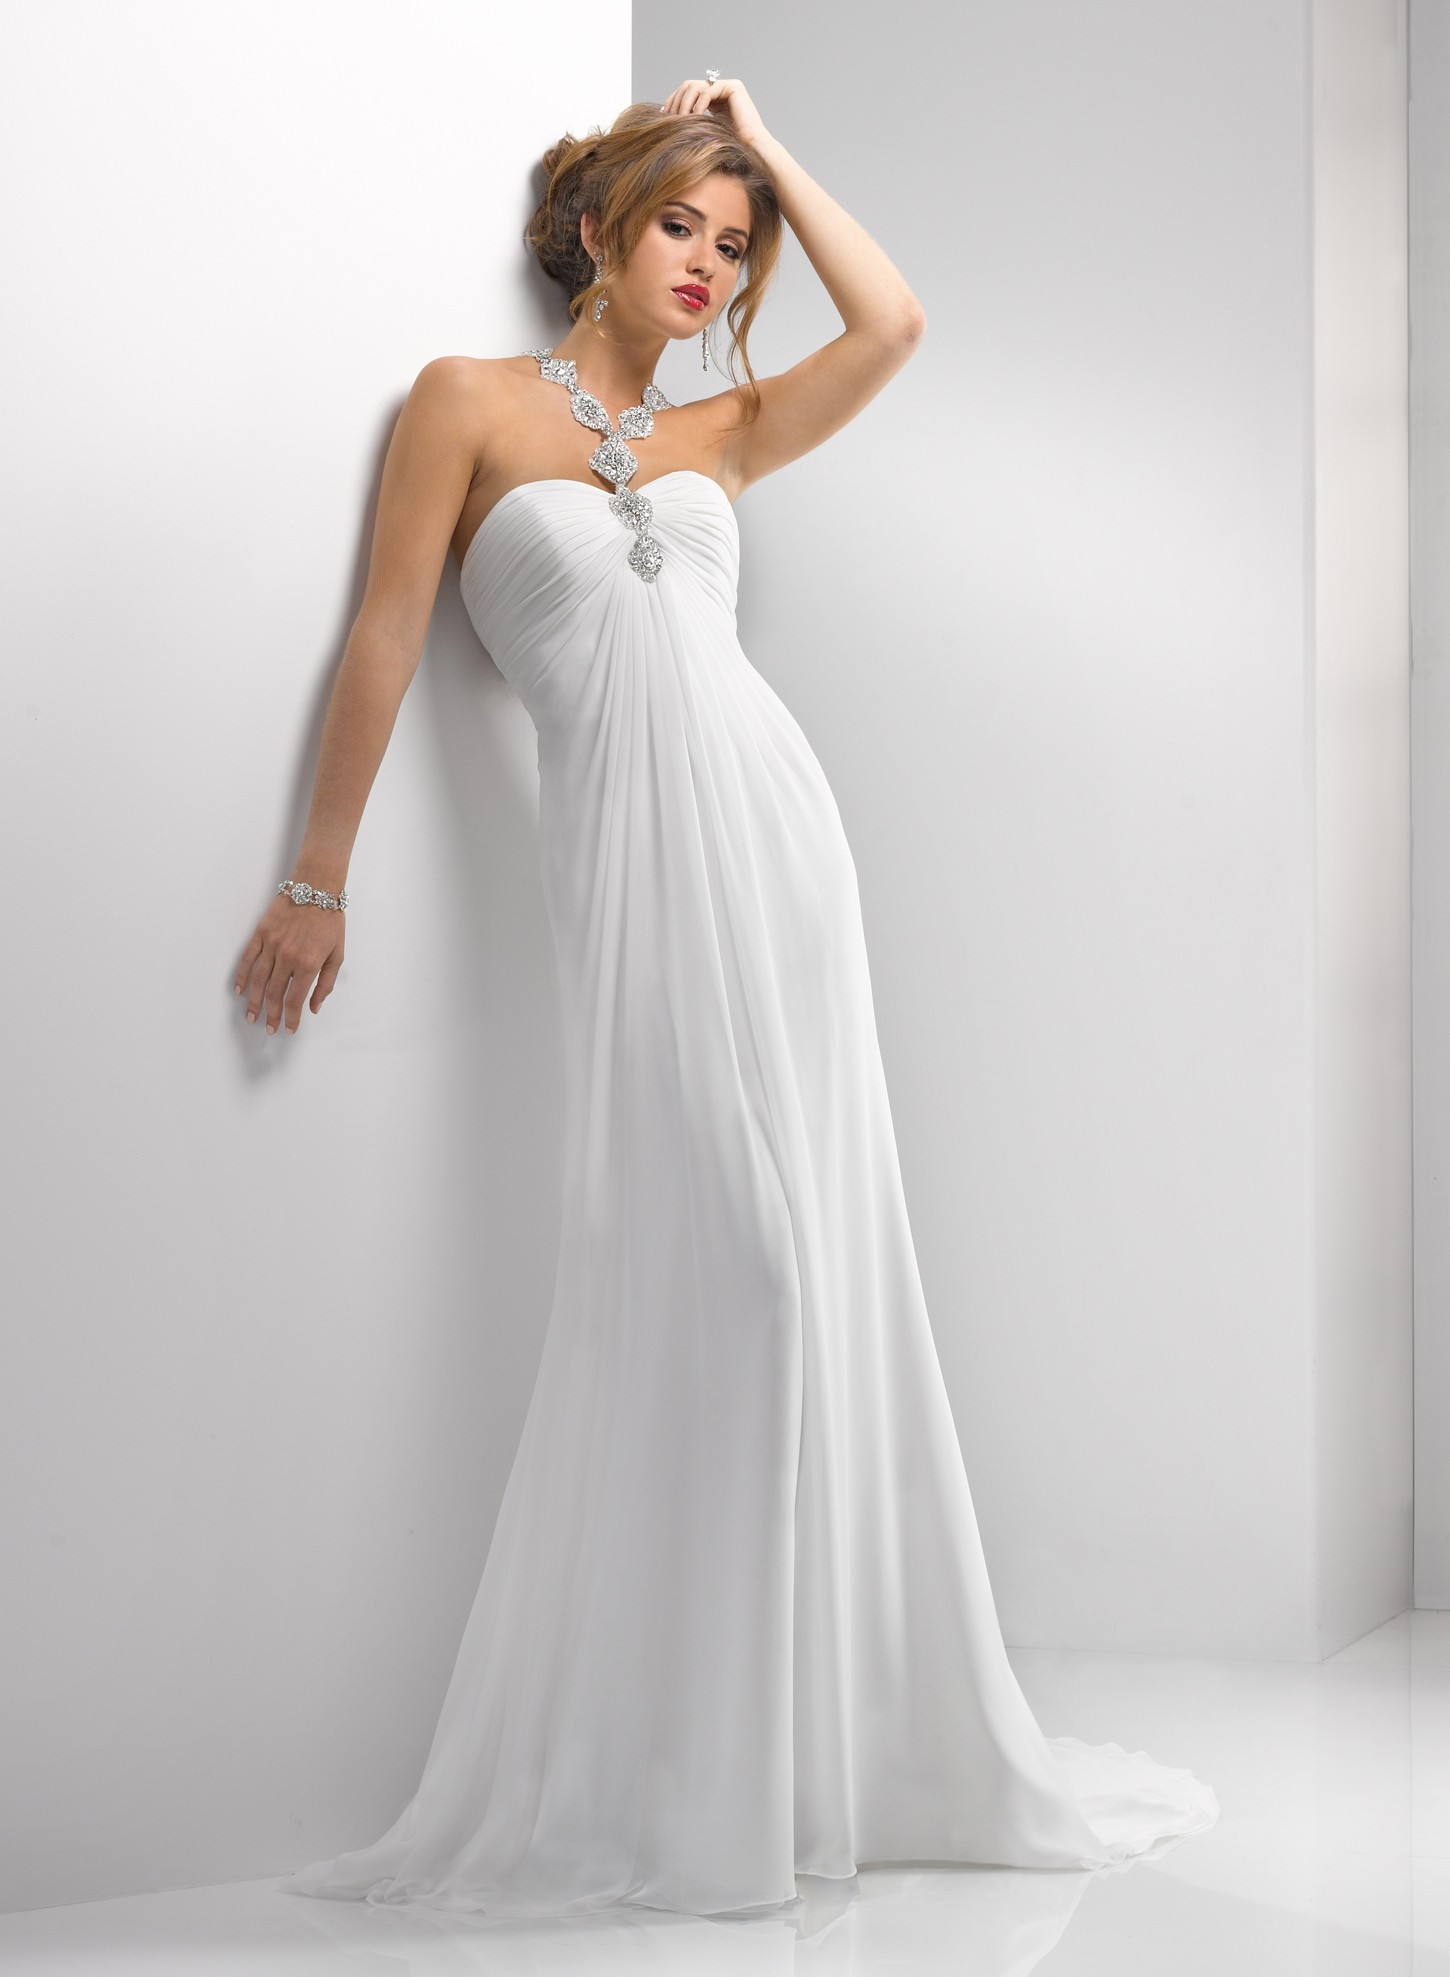 Petite wedding dress tips for our lovely petite girls for Skin tight wedding dresses